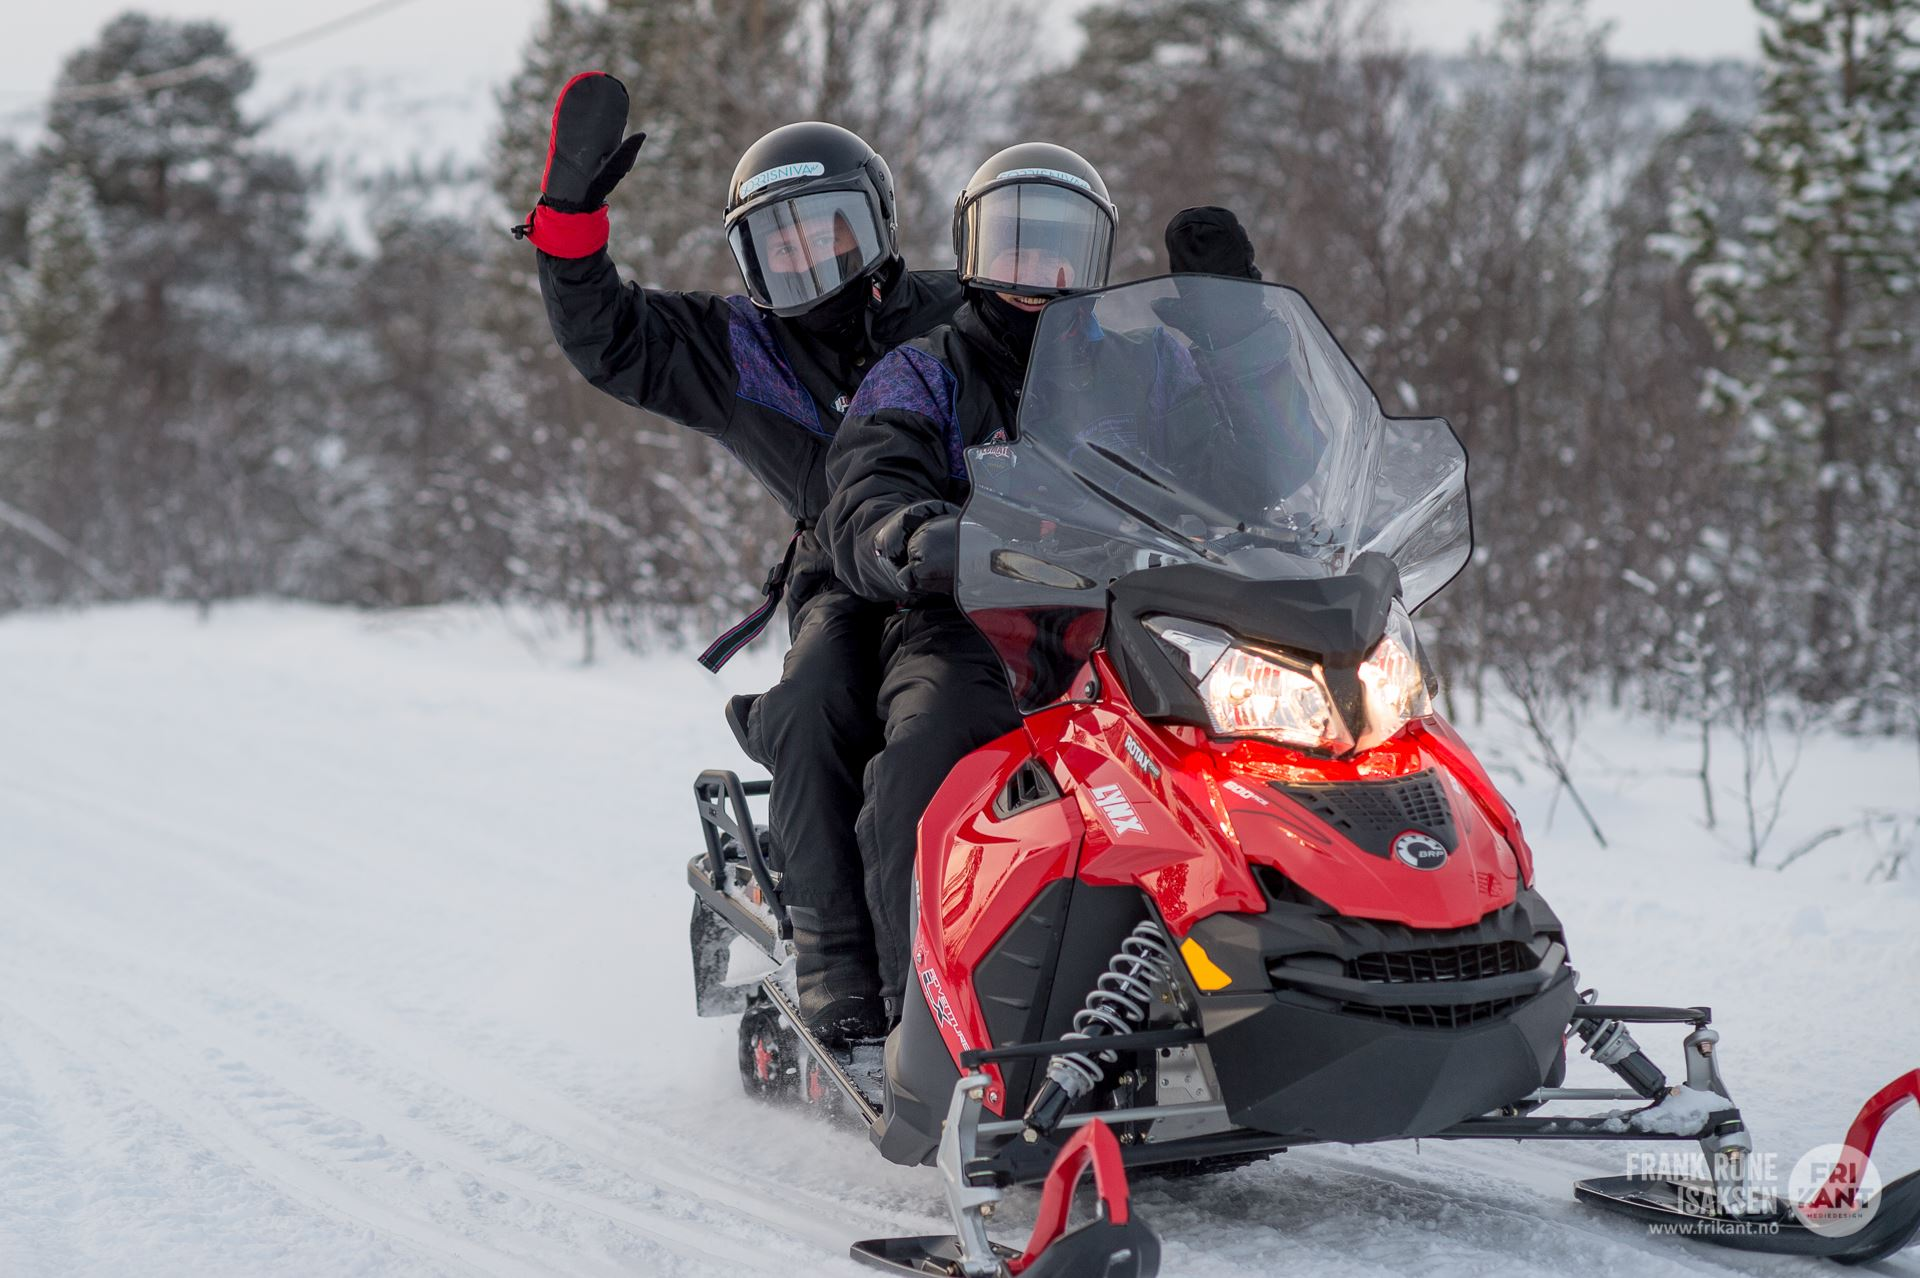 Arctic Light Experience by snowmobile (2,5 hours) & Igloo Hotel visit